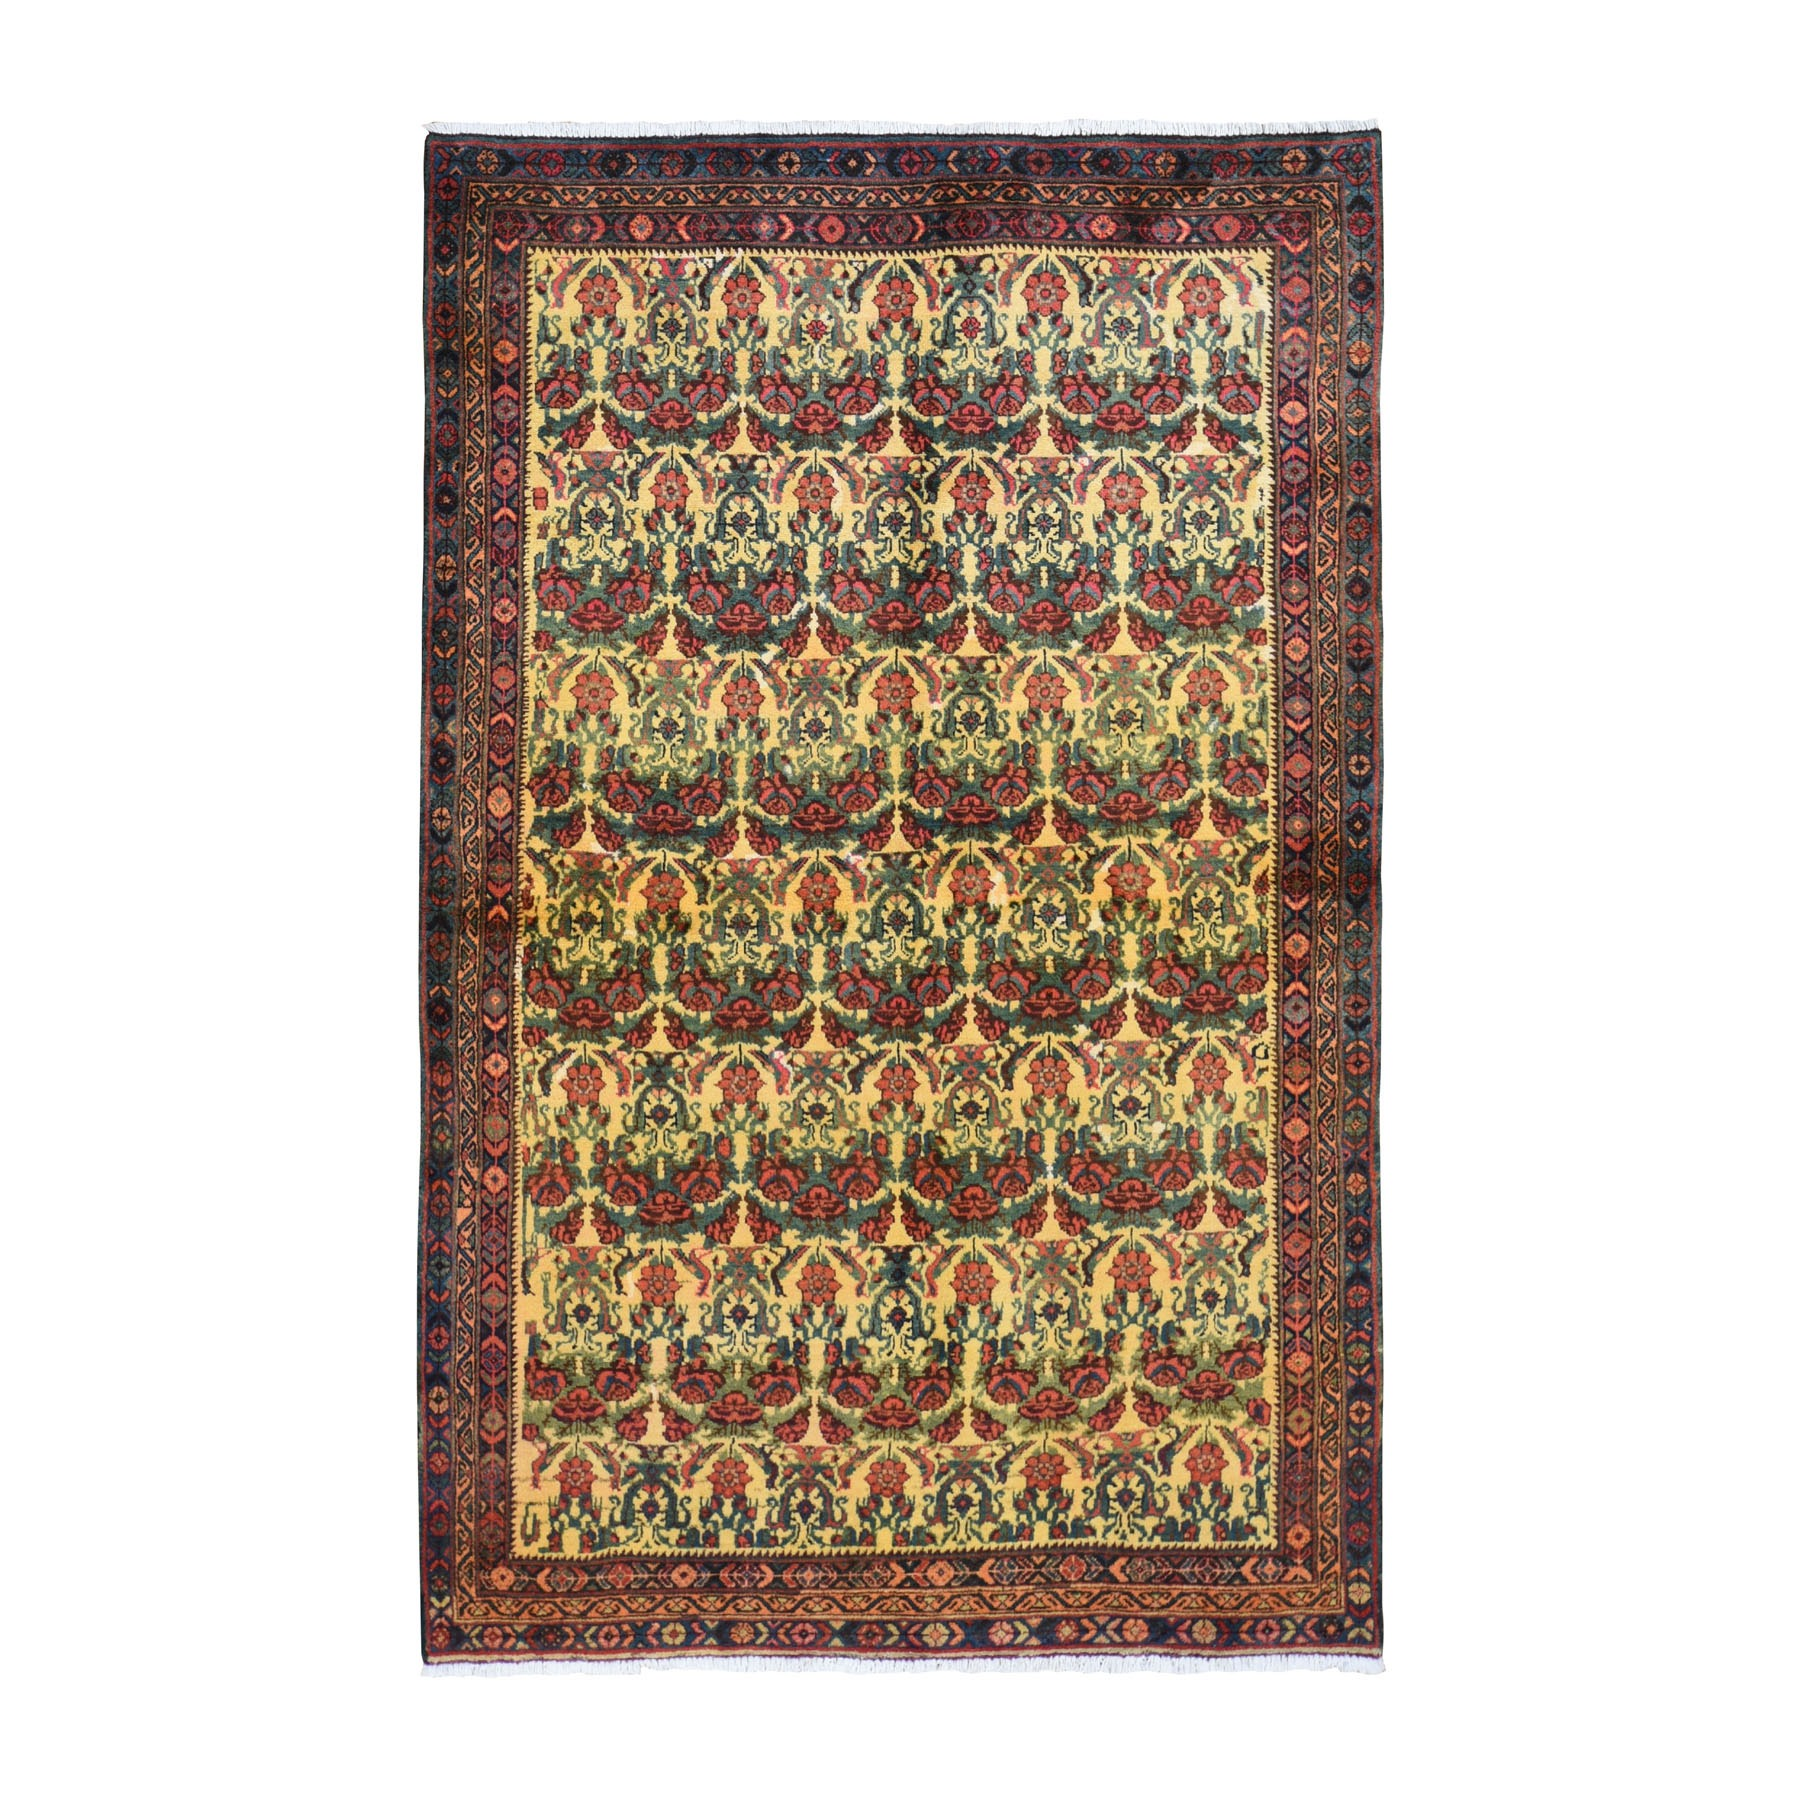 "4'10""x8' Yellow Vintage Persian Bakhtiari Repetitive flower Design Pure Wool Knotted Oriental Rug"